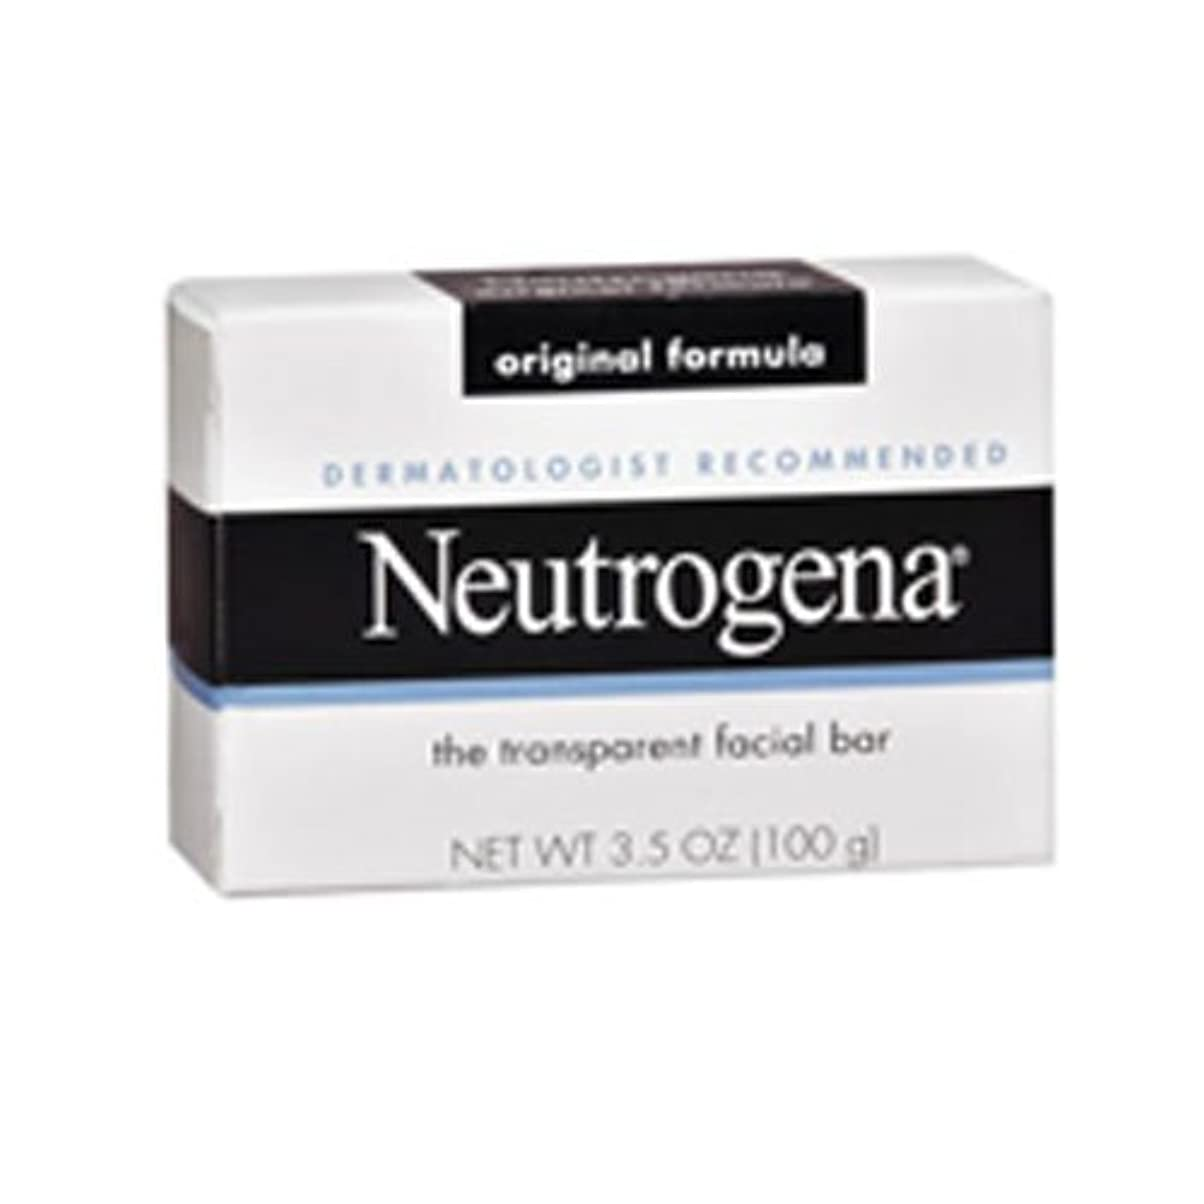 徹底的に請う許可海外直送肘 Neutrogena Transparent Facial Soap Bar, 3.5 oz